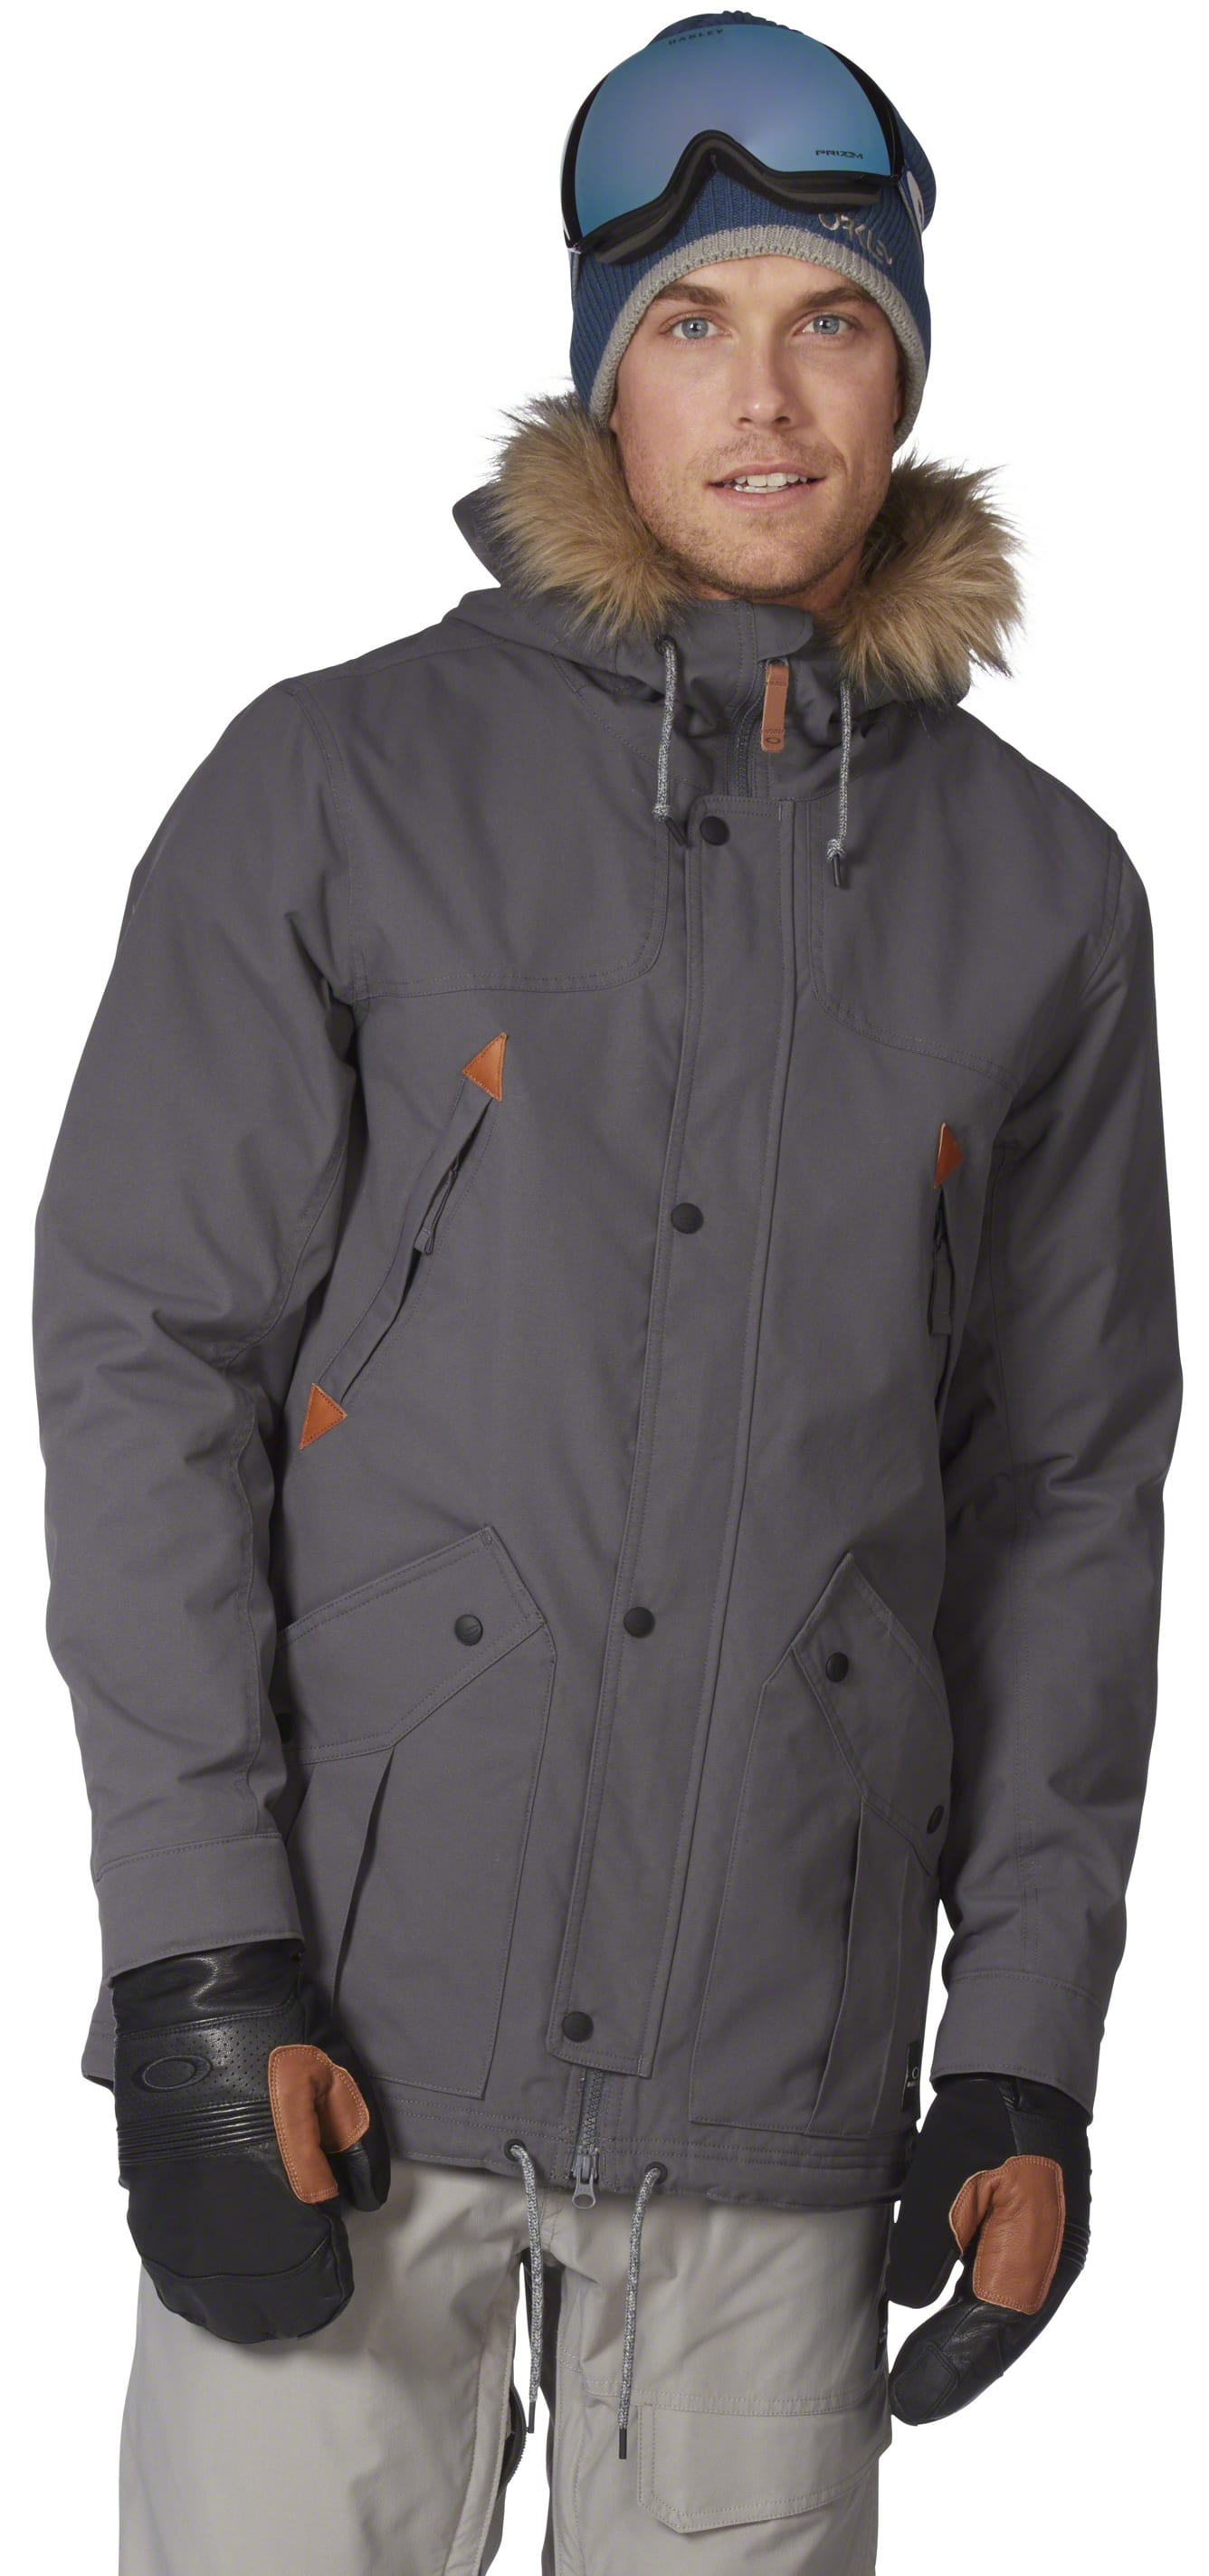 86572ea8148 On Sale Oakley Silver Horse Parka Fit Snowboard Jacket up to 40% off